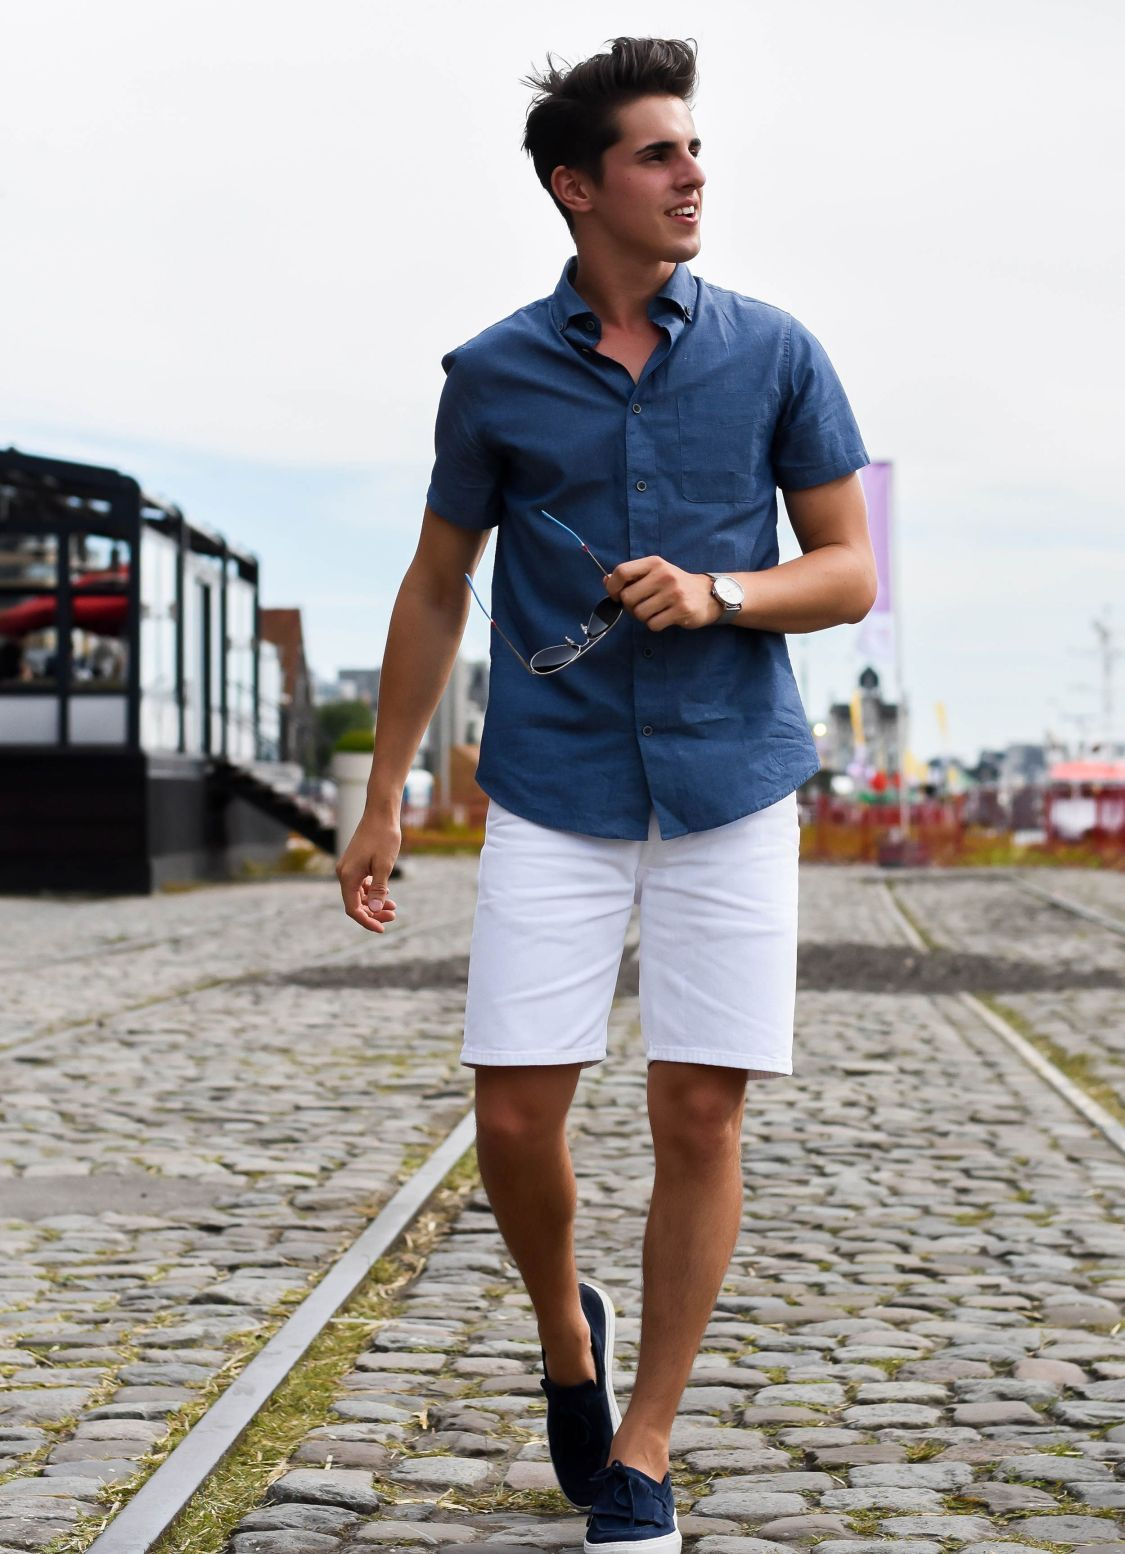 30 Cool And Fashionable Men S Shorts Ideas To Looks More Handsome Fashions Nowadays Summer Outfits Men Mens Fashion Summer Mens Street Style [ 1554 x 1125 Pixel ]